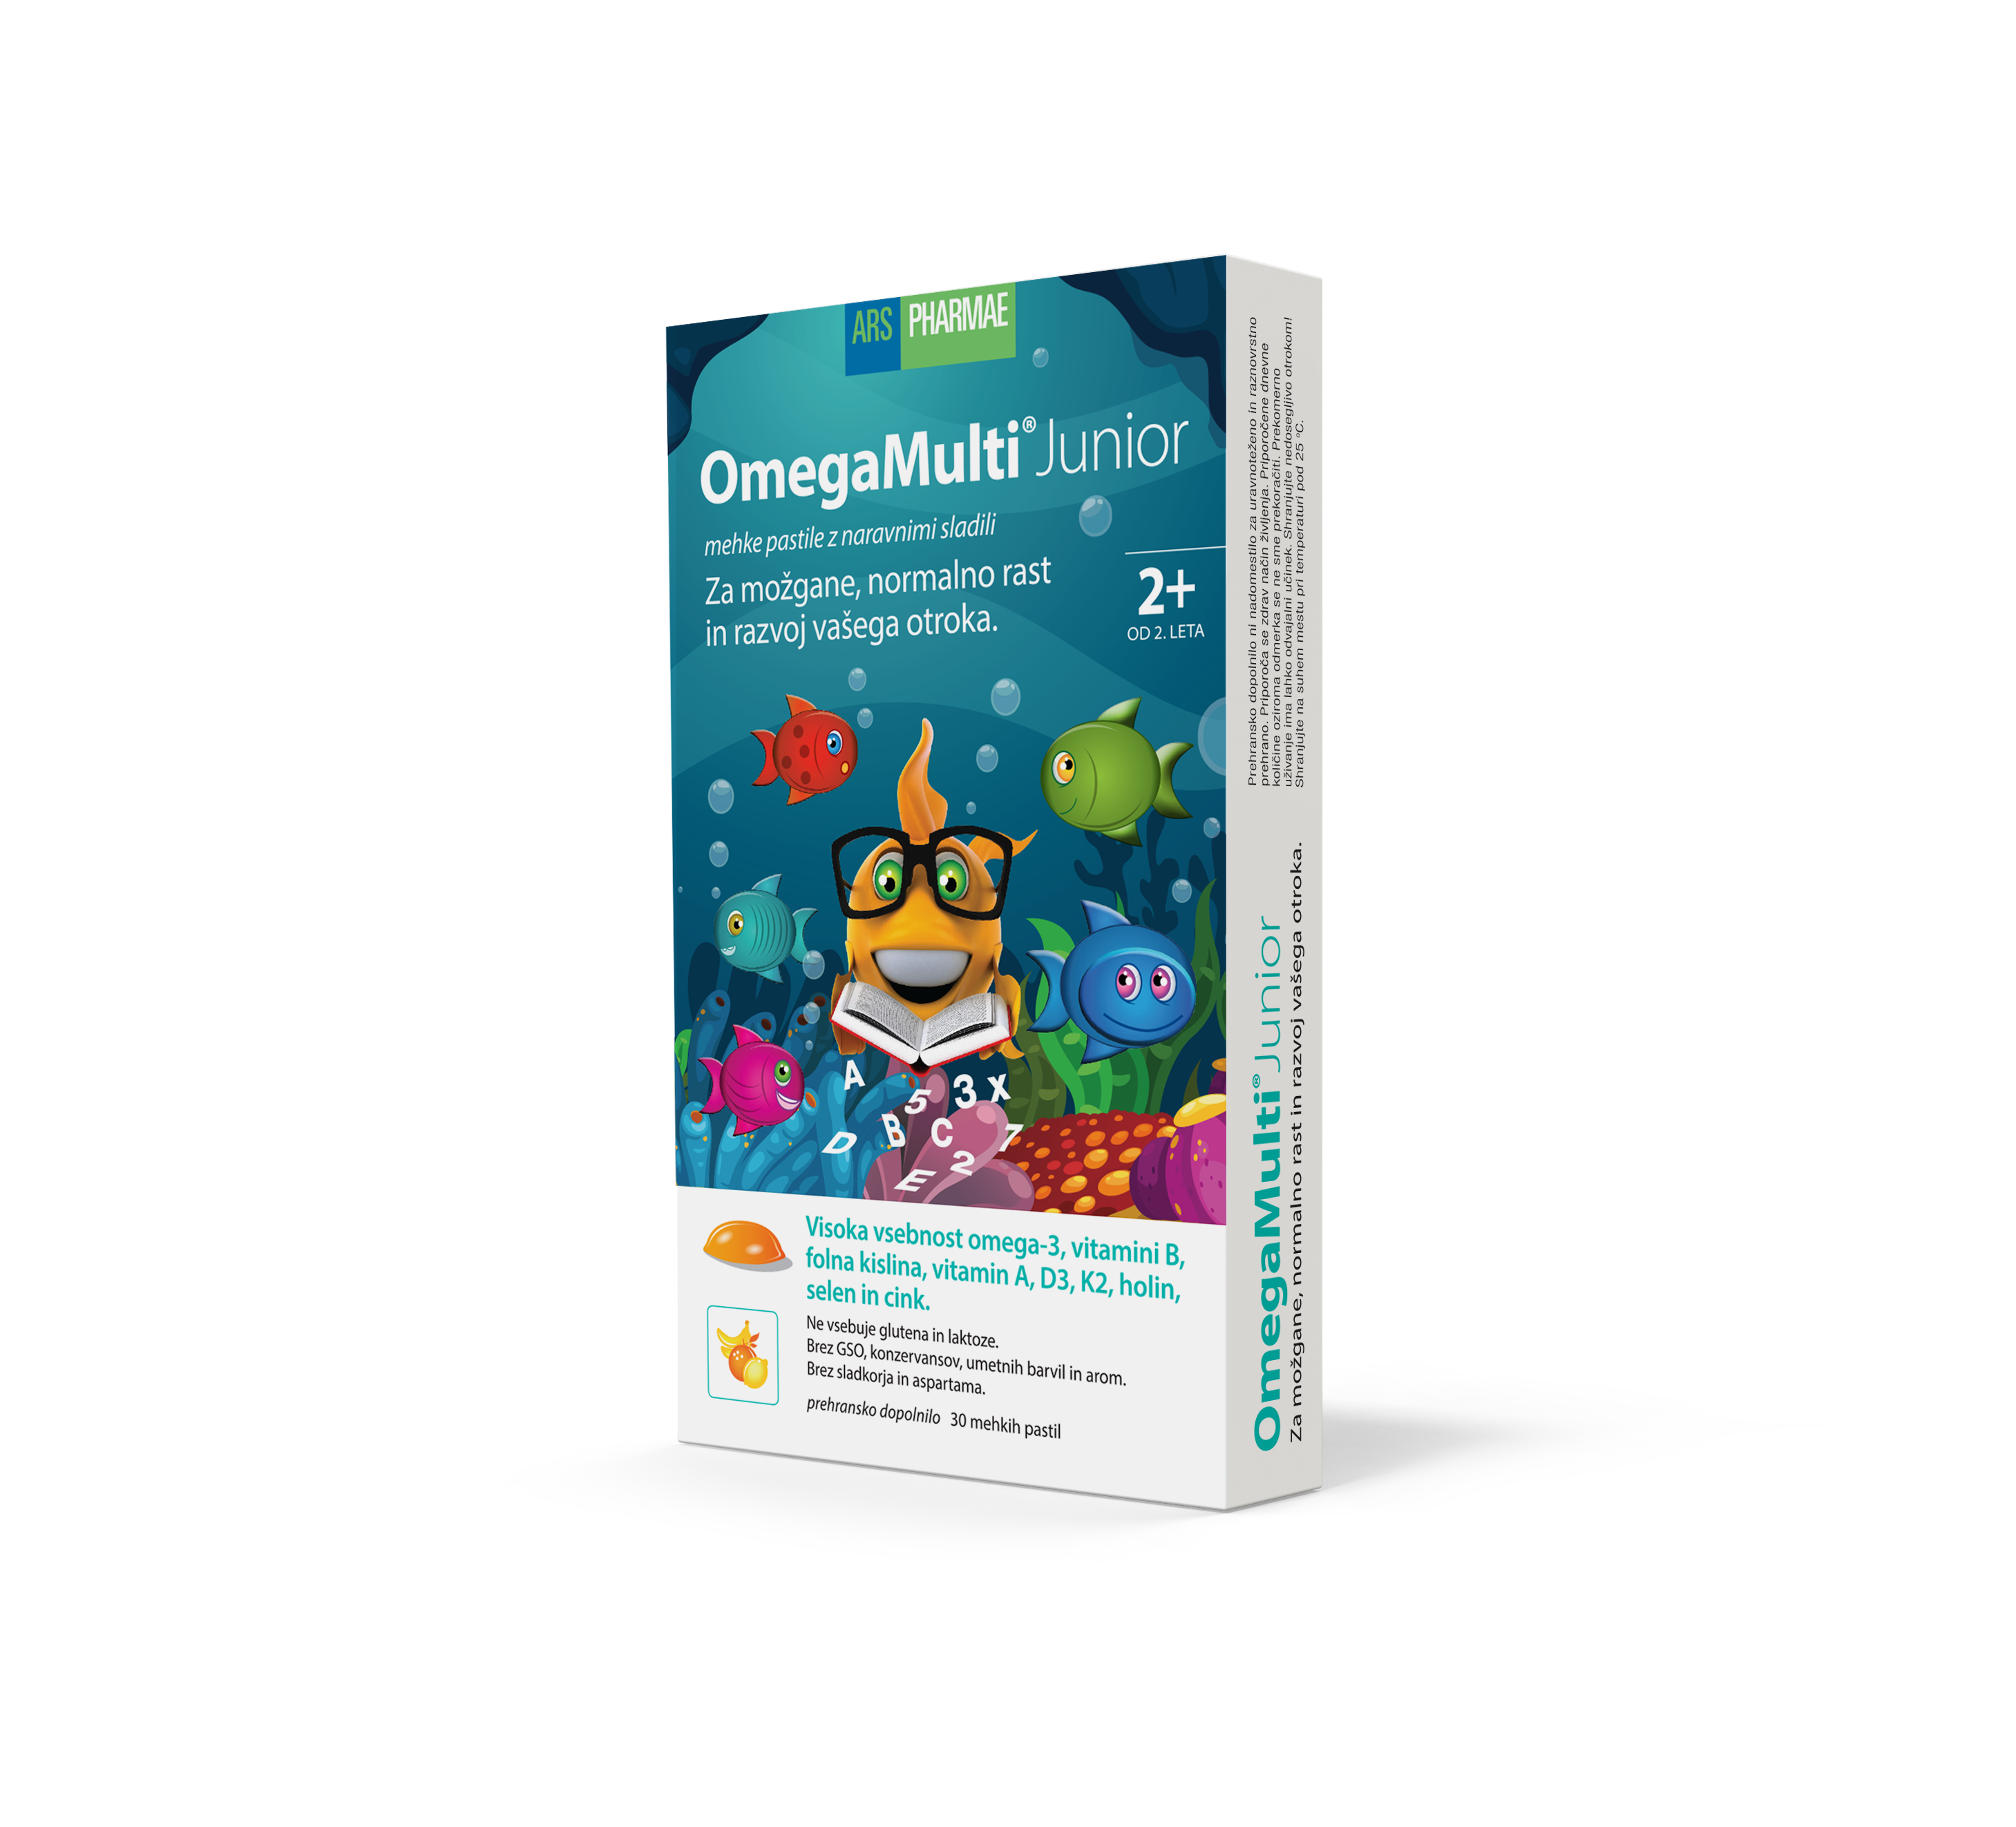 OmegaMulti® Junior